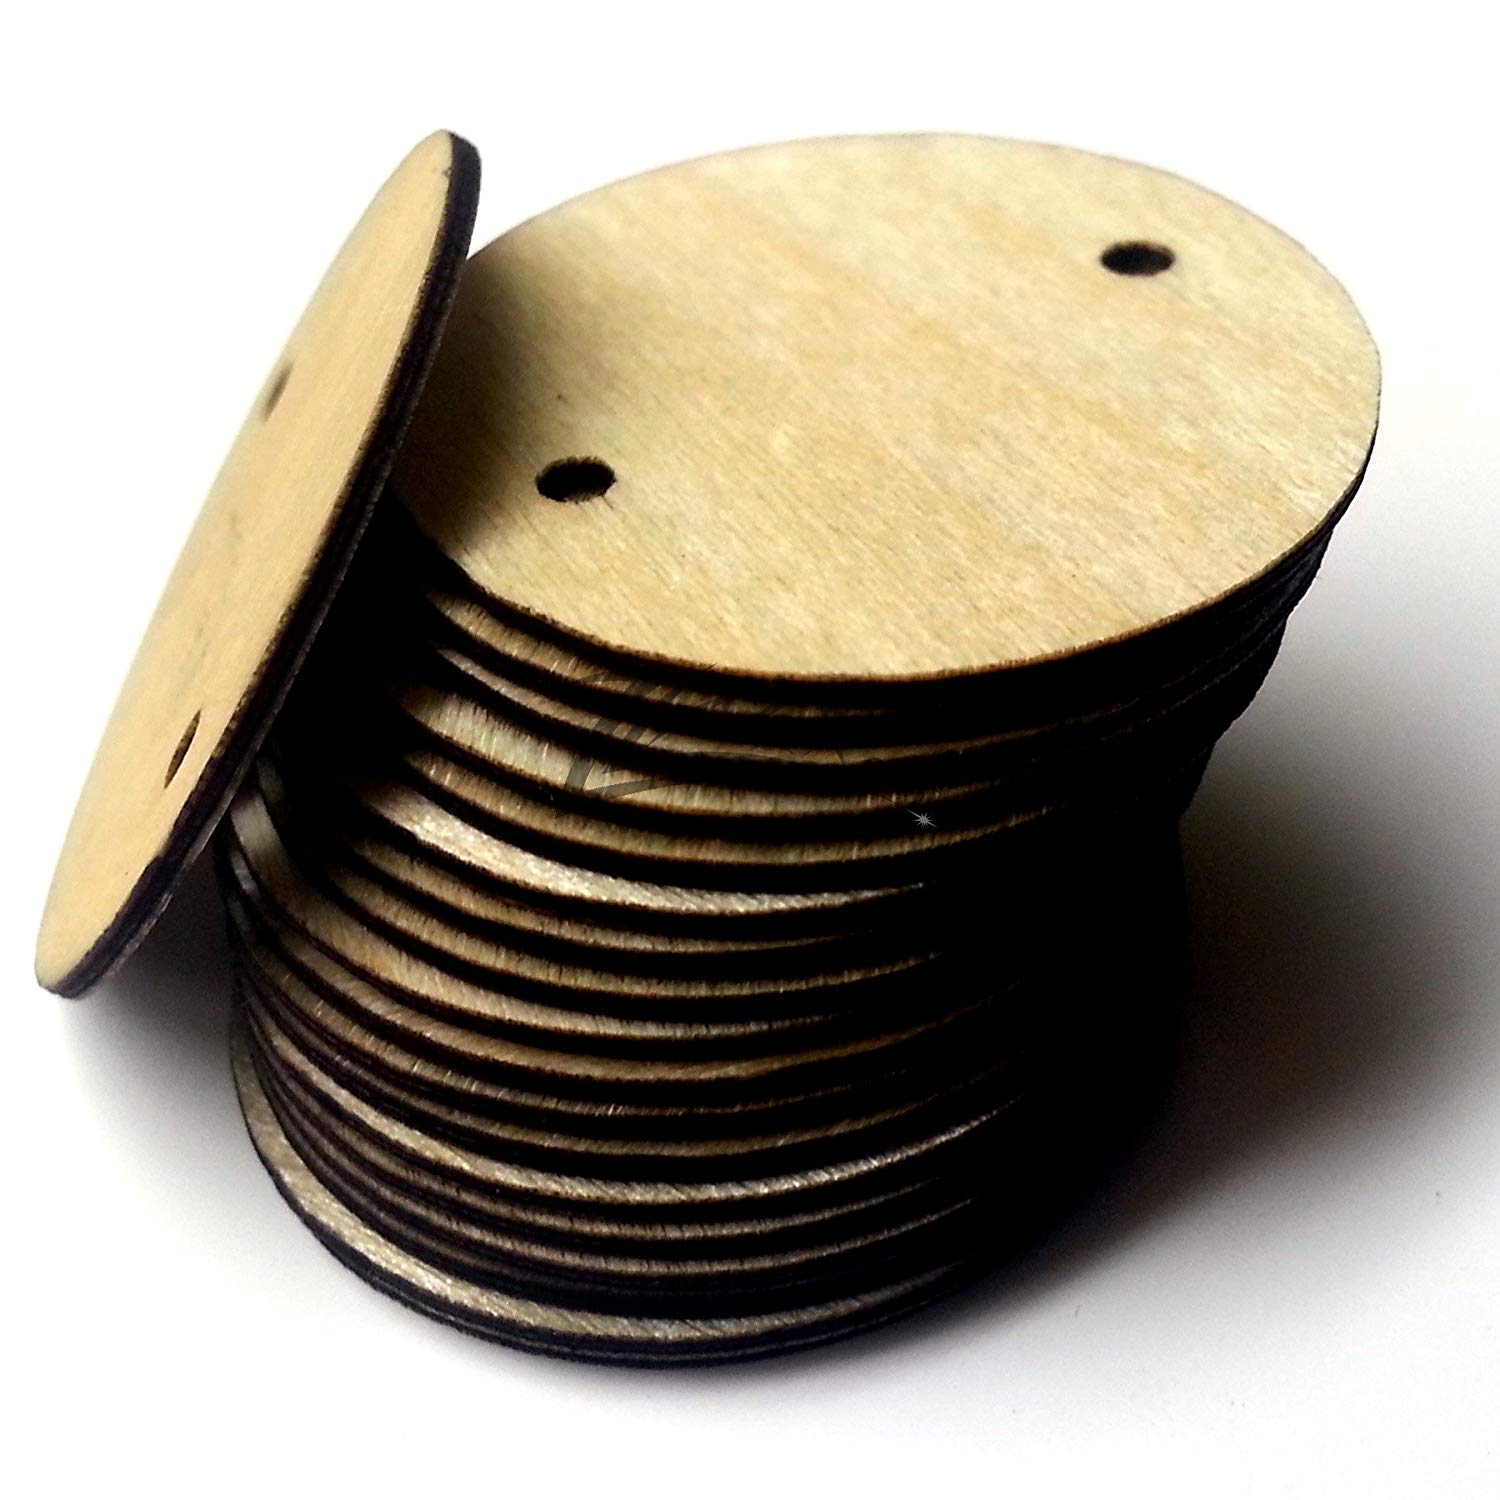 """ZLazr: 100 1"""" X 1/32"""" Small Super THIN Wooden Circles Family Birthday Craft Disc Two 2mm Hole Tags Unfinished Birch Wood Made in the USA!"""